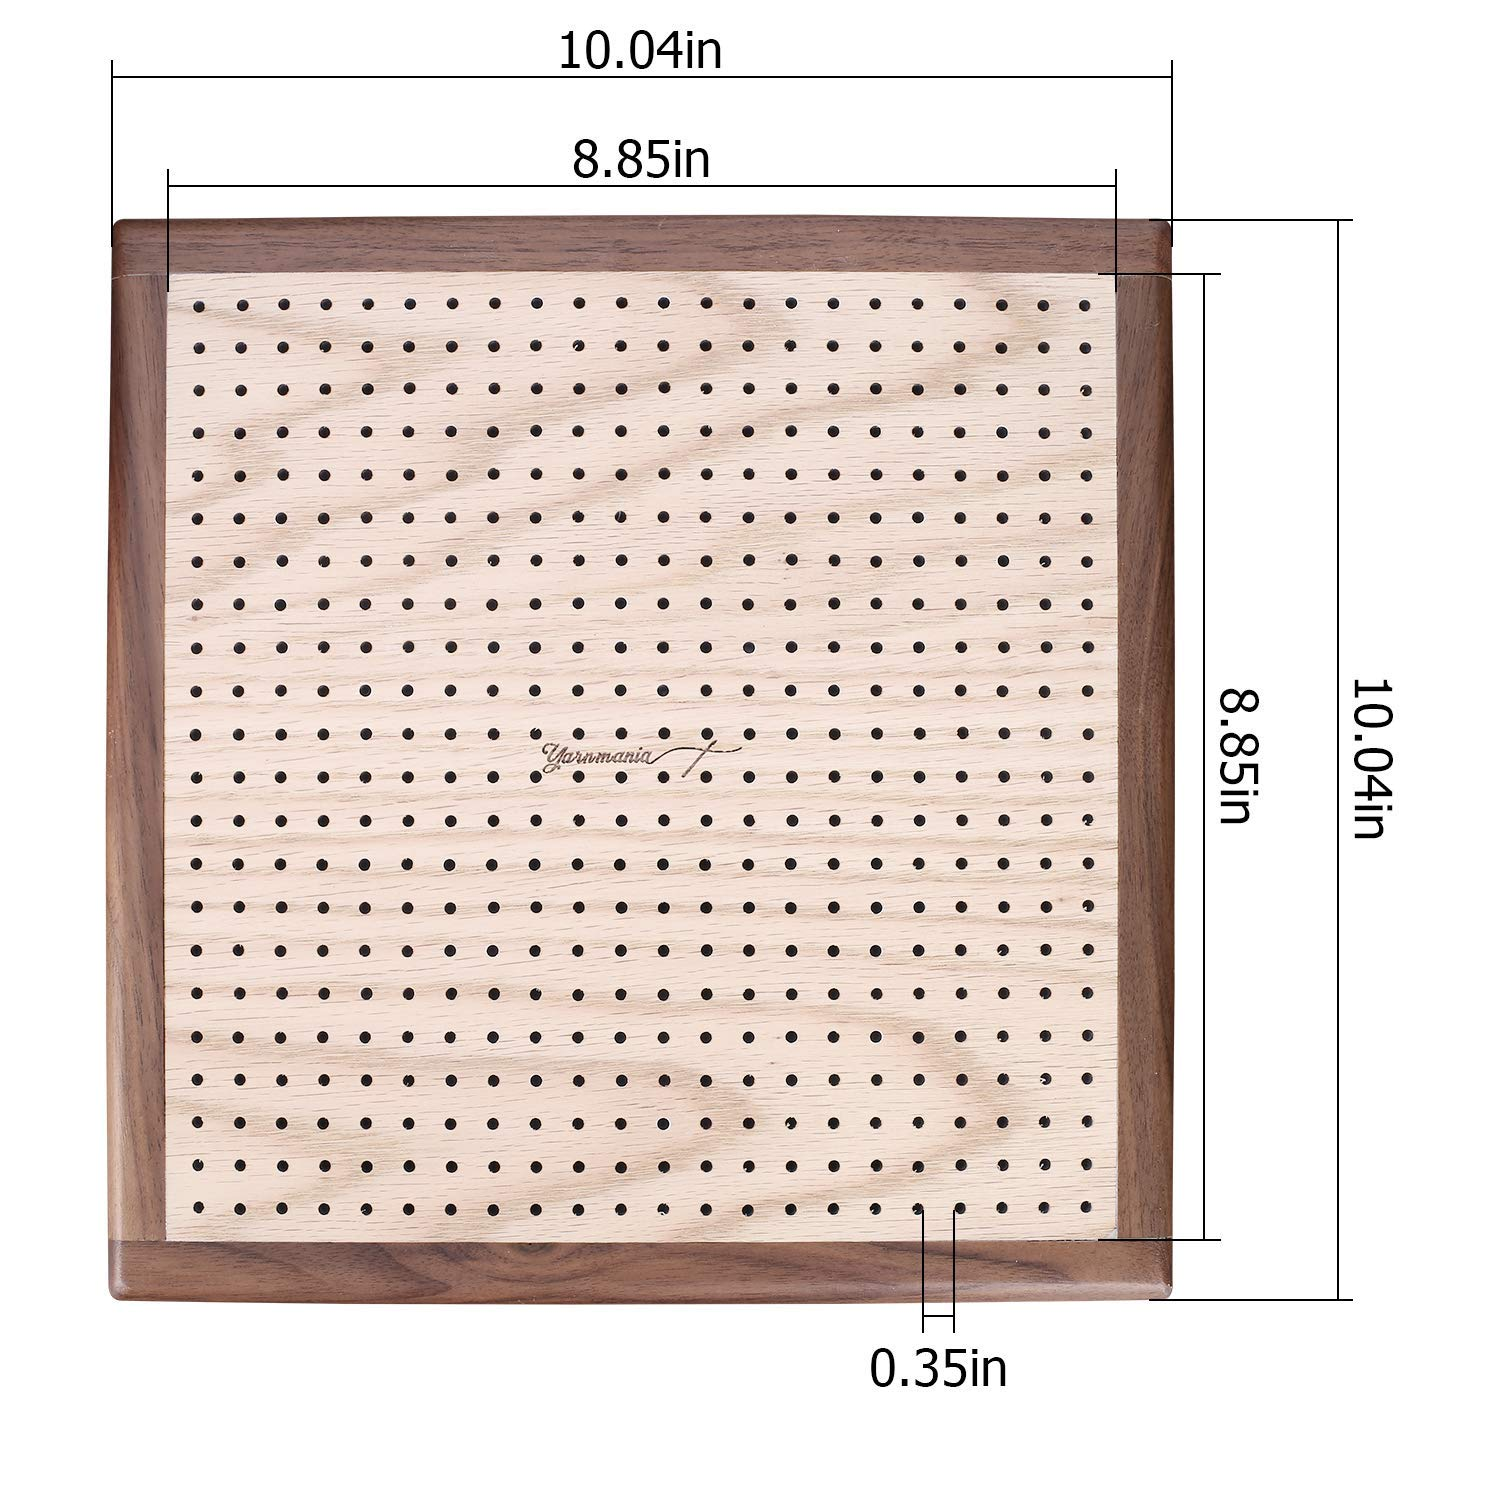 Yarn Mania - Premium Blocking Boards for Knitting with Grids - Handcrafted Wood Crochet Blocking Board with 20 Stainless Steel Pins (9 inches) by Yarn Mania (Image #3)